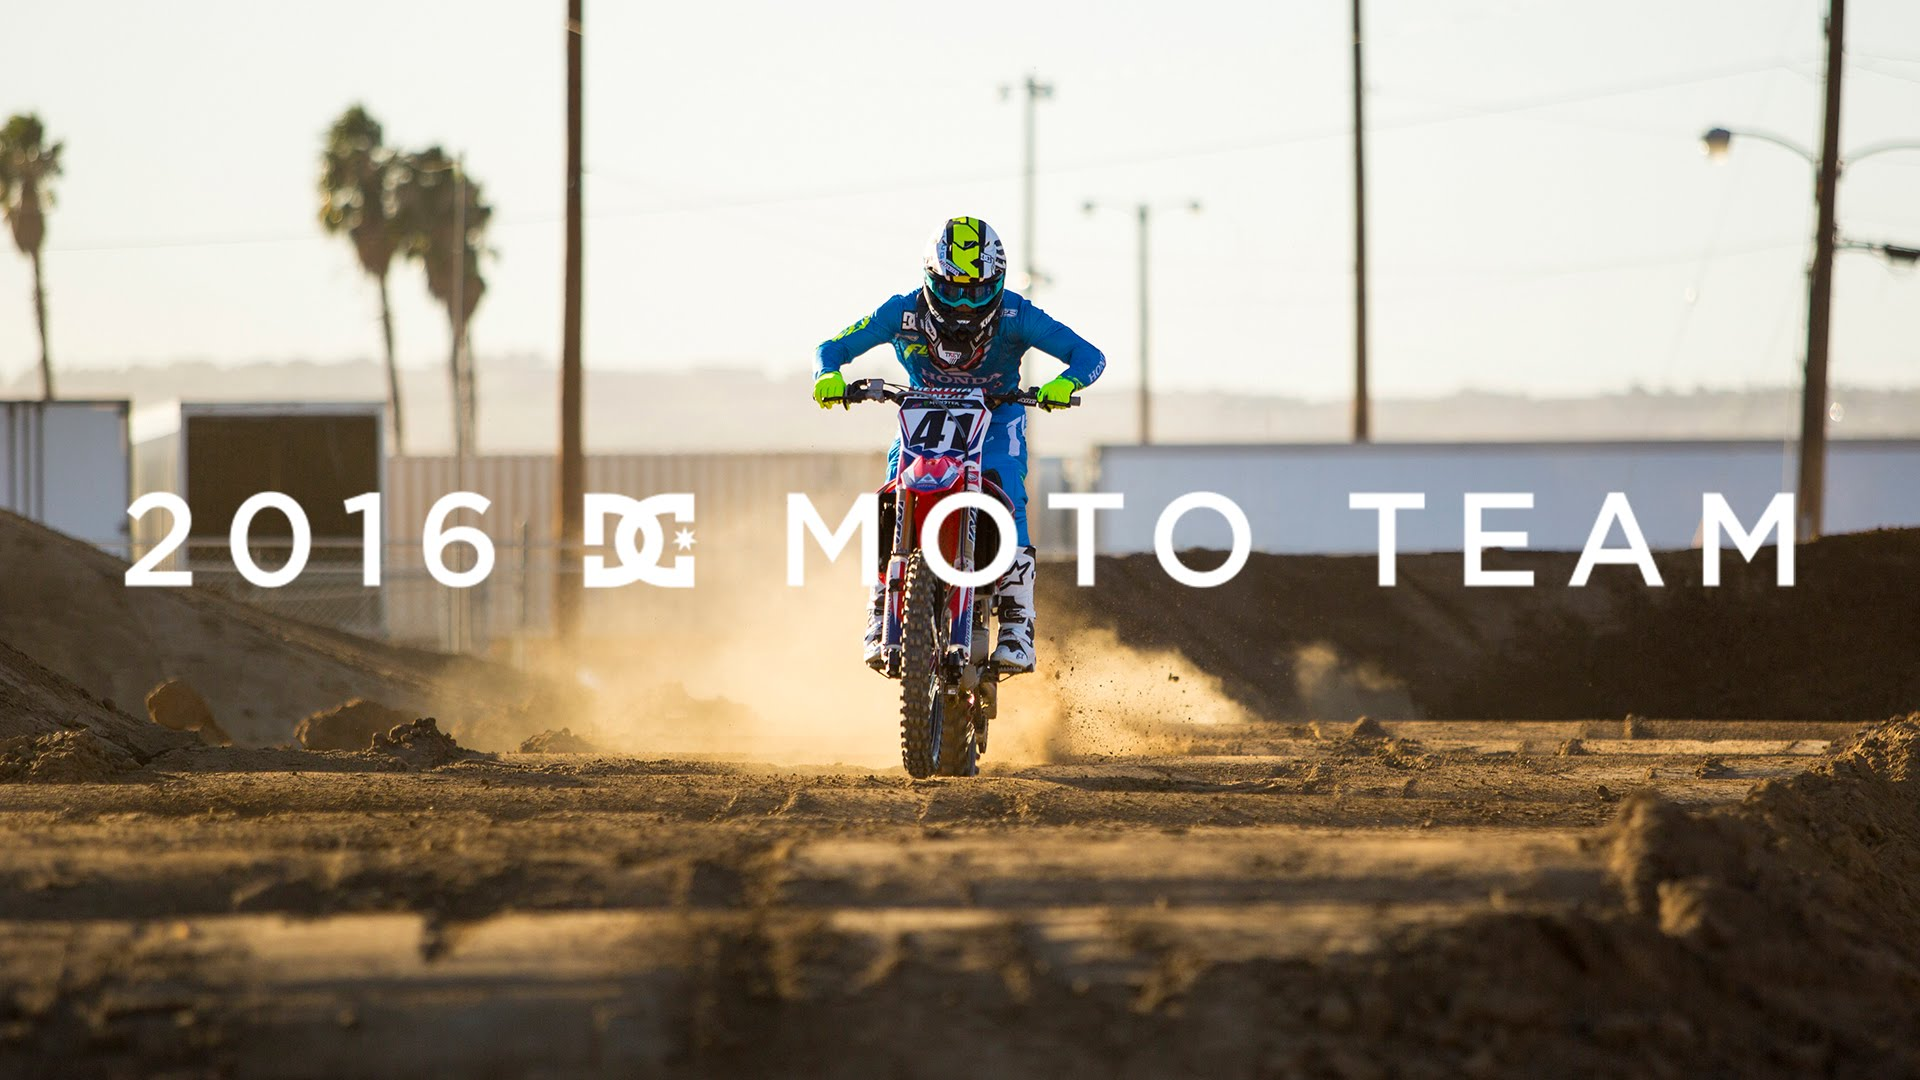 DC SHOES: 2016 DC MOTO TEAM.